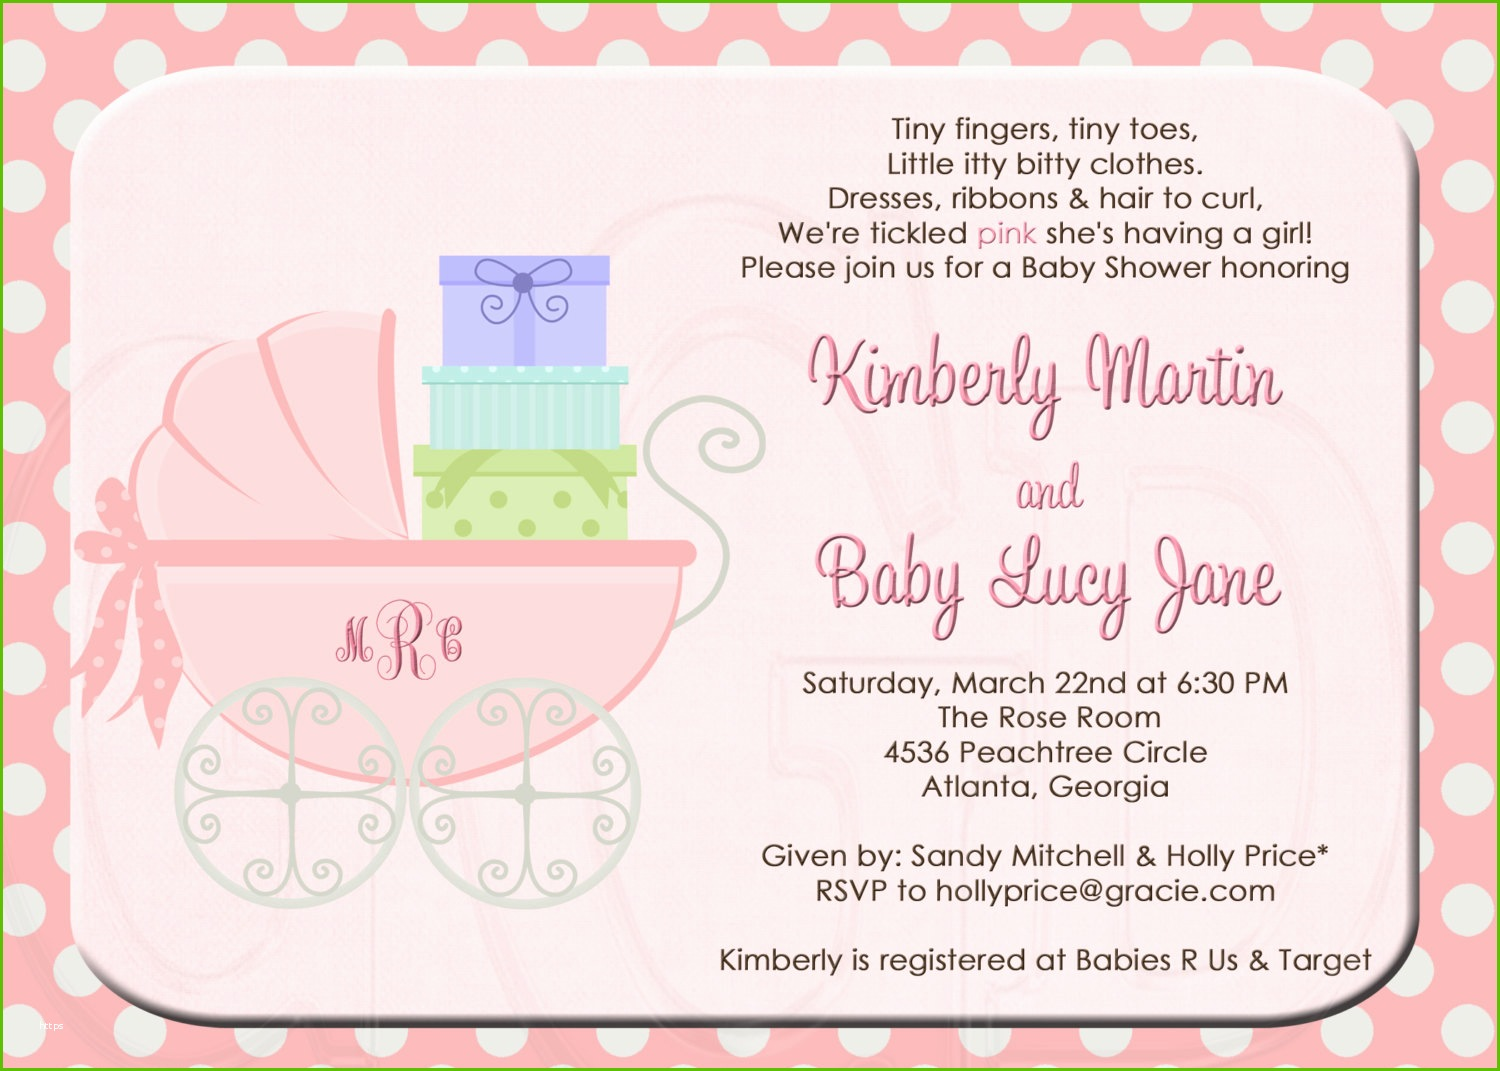 Full Size of Baby Shower:baby Shower Halls With Baby Shower At The Park Plus Recuerdos De Baby Shower Together With Fun Baby Shower Games As Well As Baby Shower Hostess Gifts And Baby Shower Verses Baby Shower Invitation Wording Funny Baby Shower Invitation Wording Beautiful Baby Shower Funny Baby Shower Invitation Wording Beautiful Baby Shower Invitation Wording Ideas